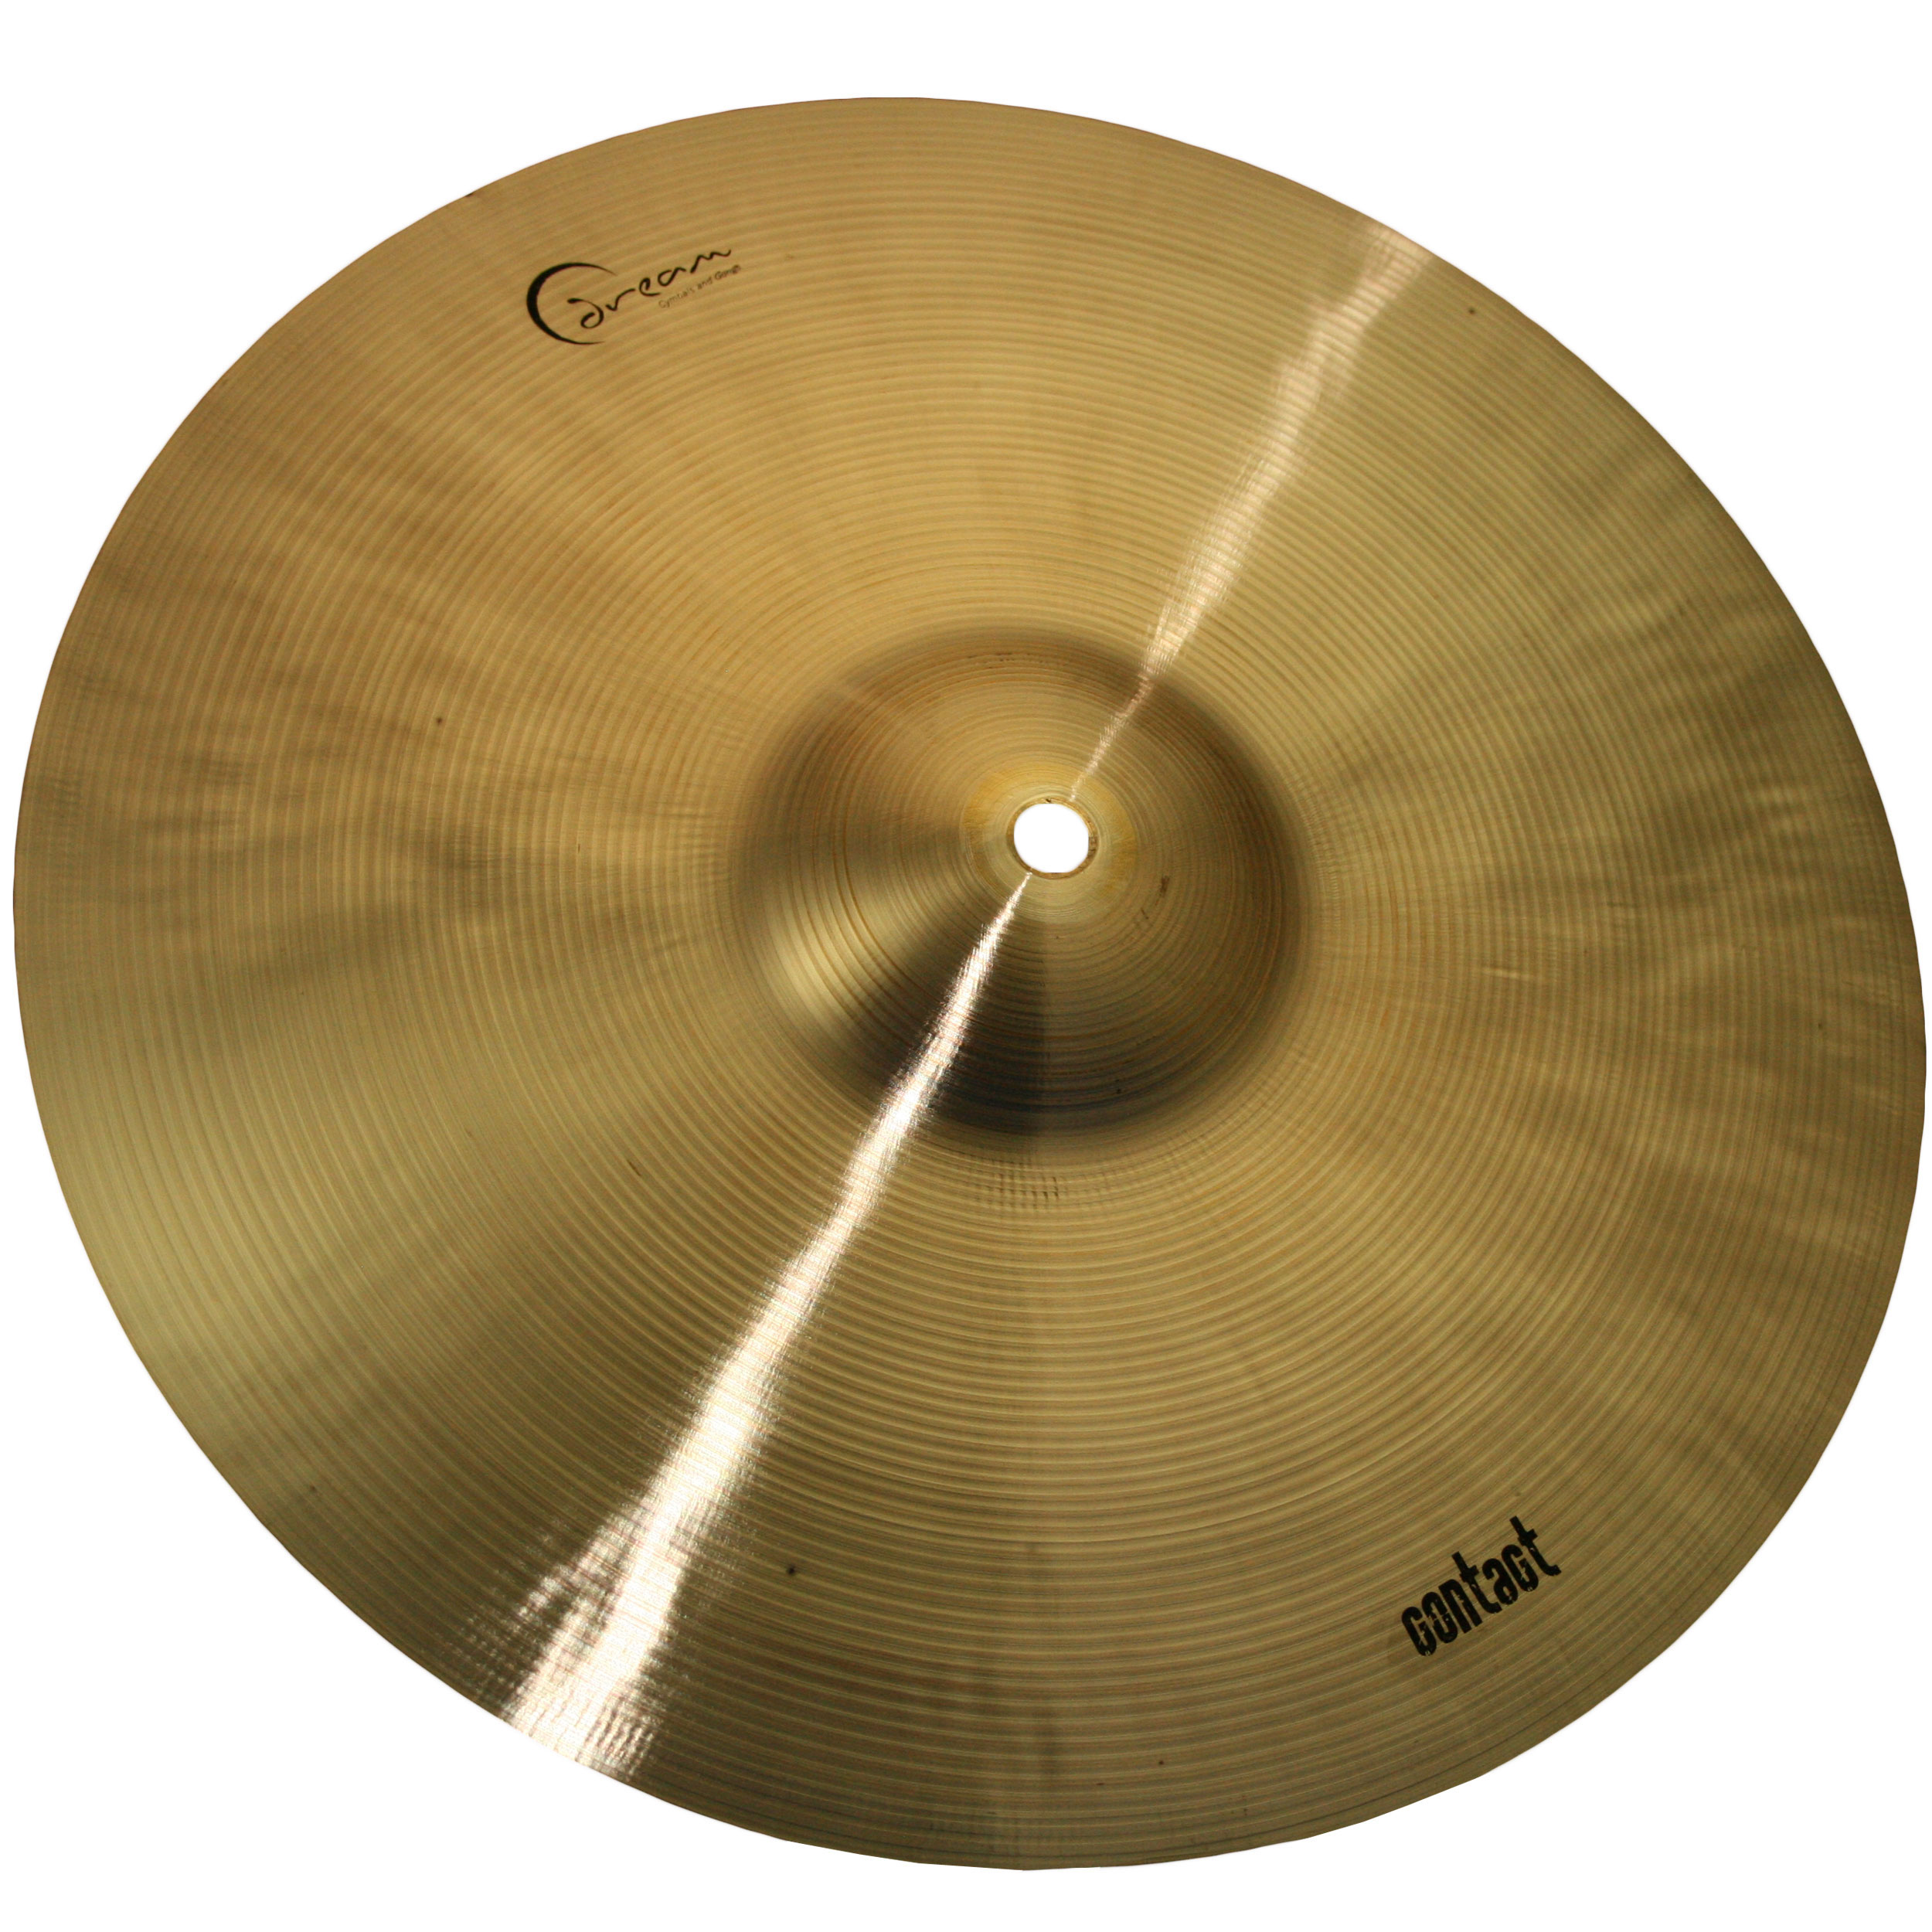 "Dream 14"" Contact Crash Cymbal"